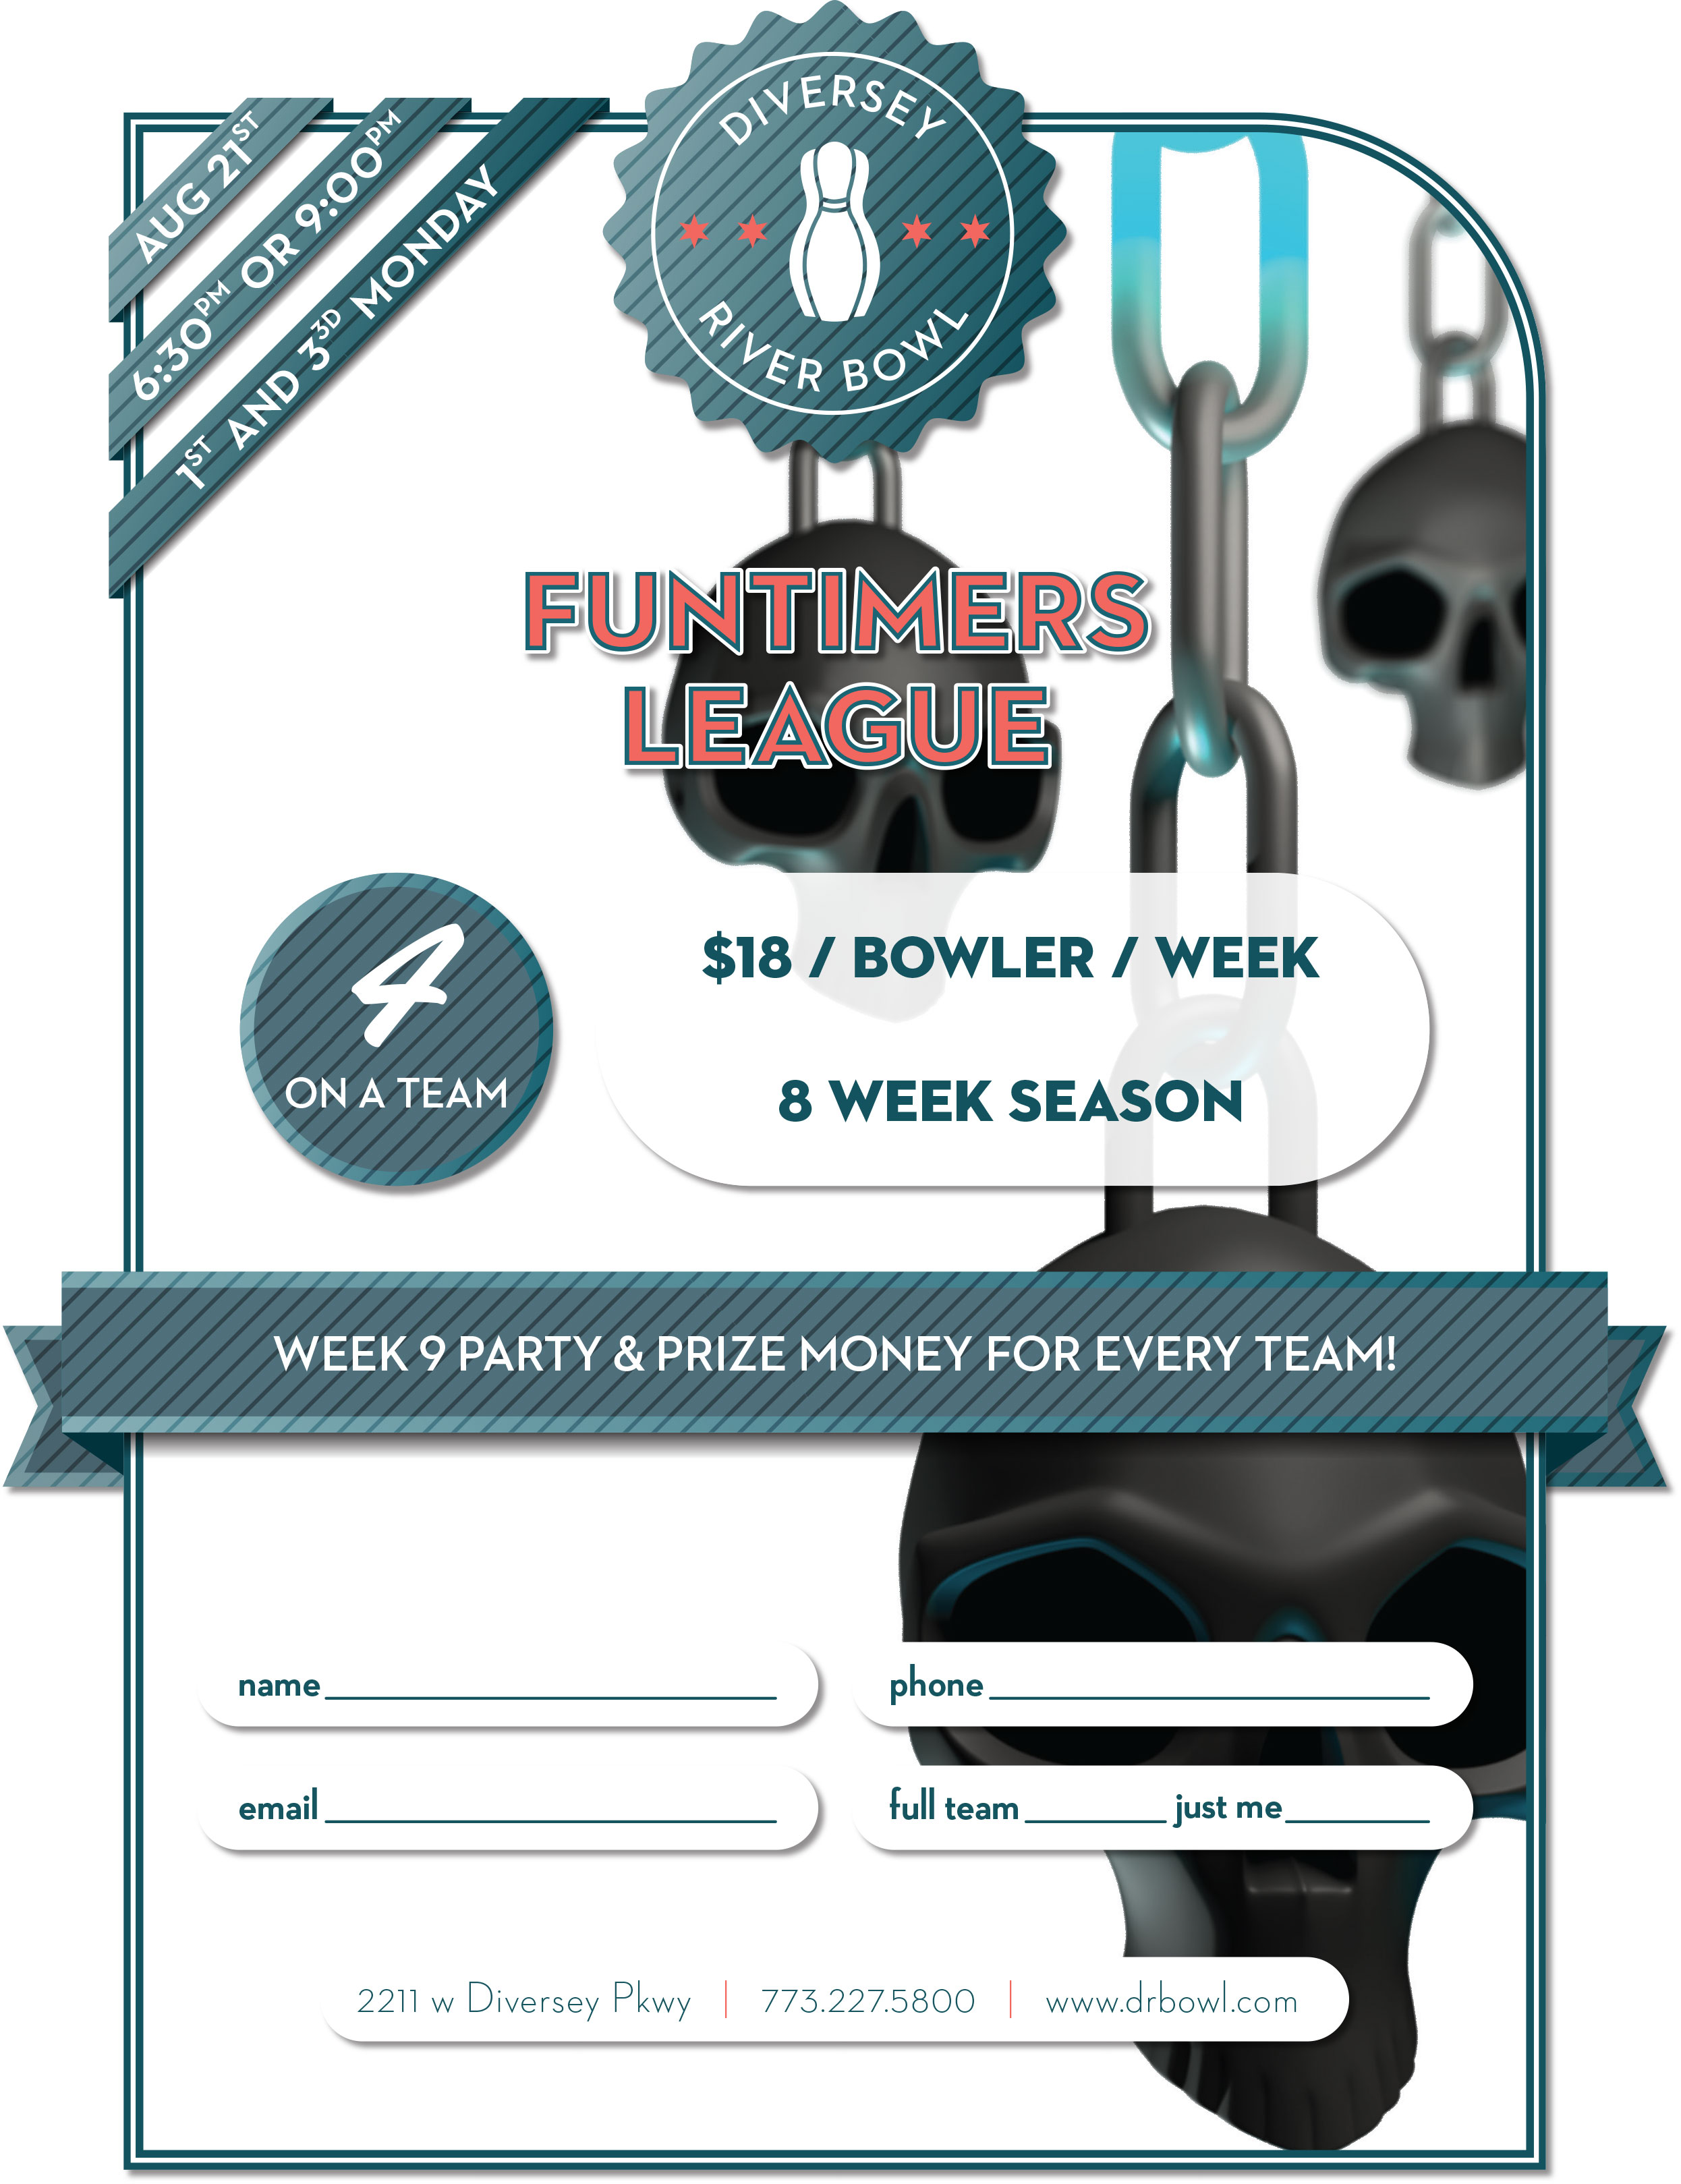 funtimers_league(6-23)